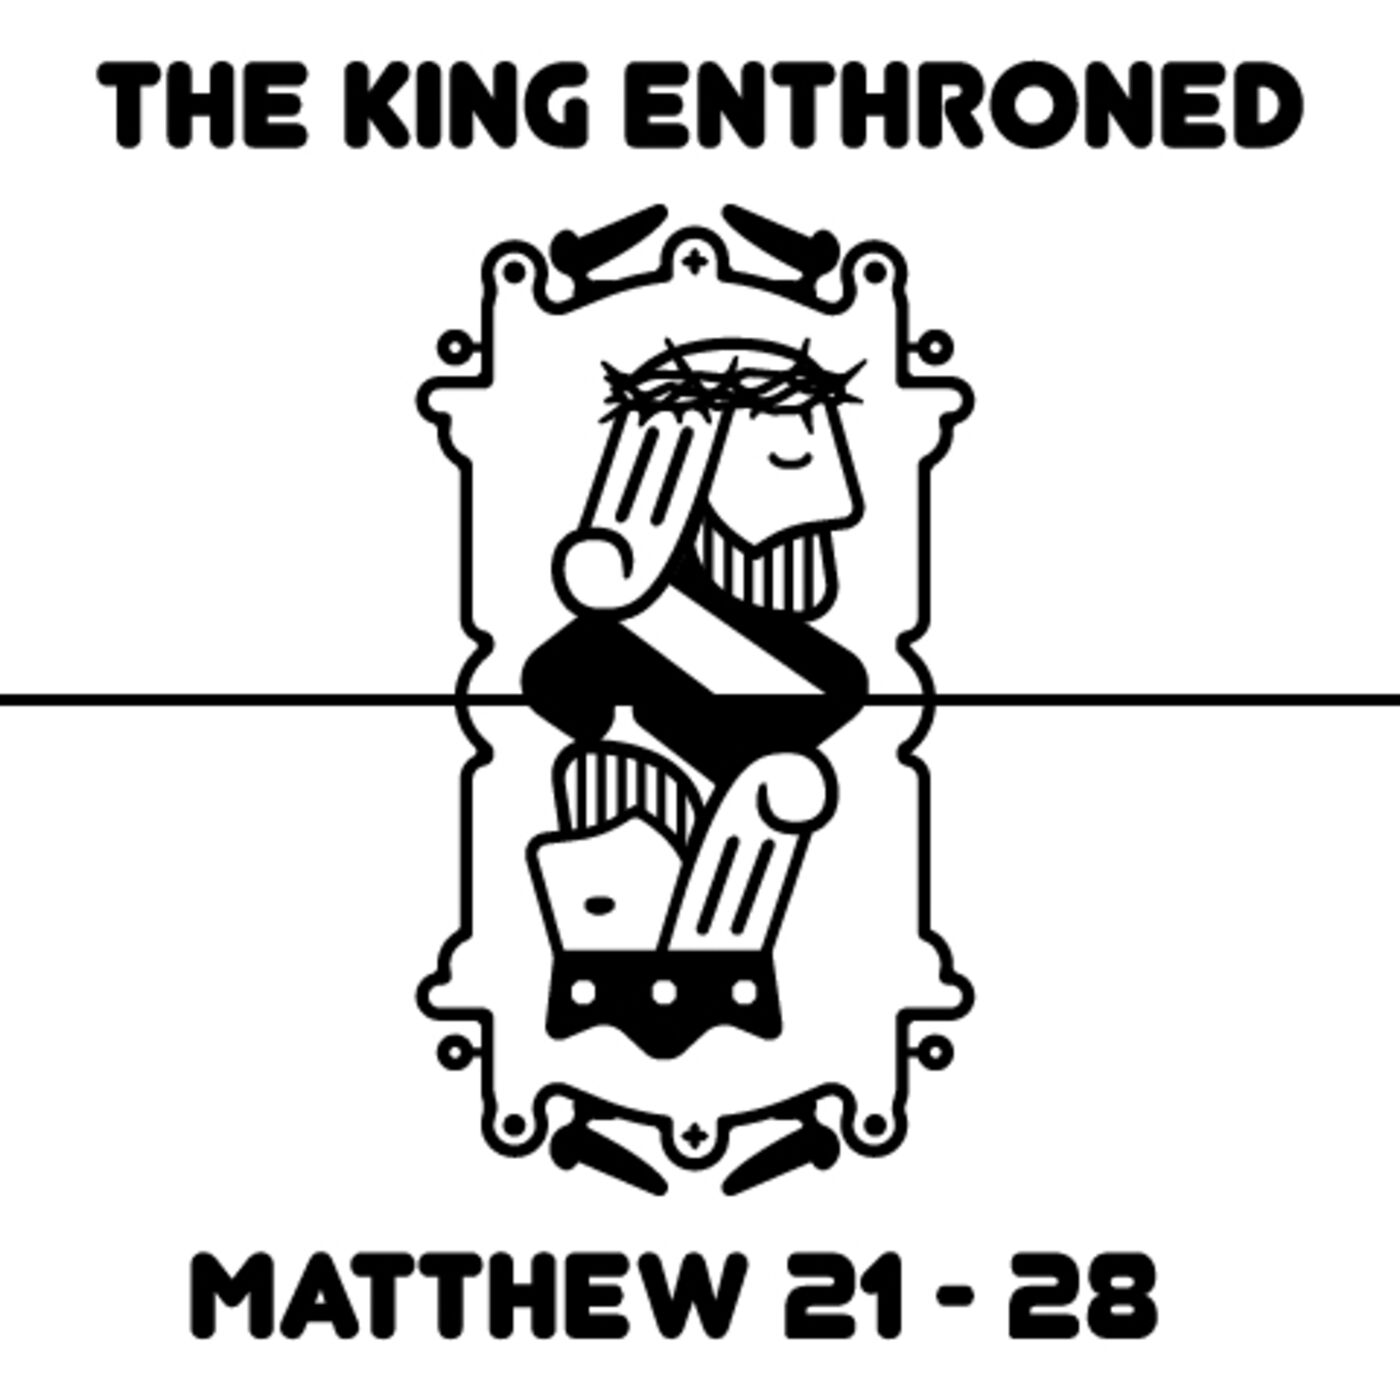 Matthew: The King's Resurrection